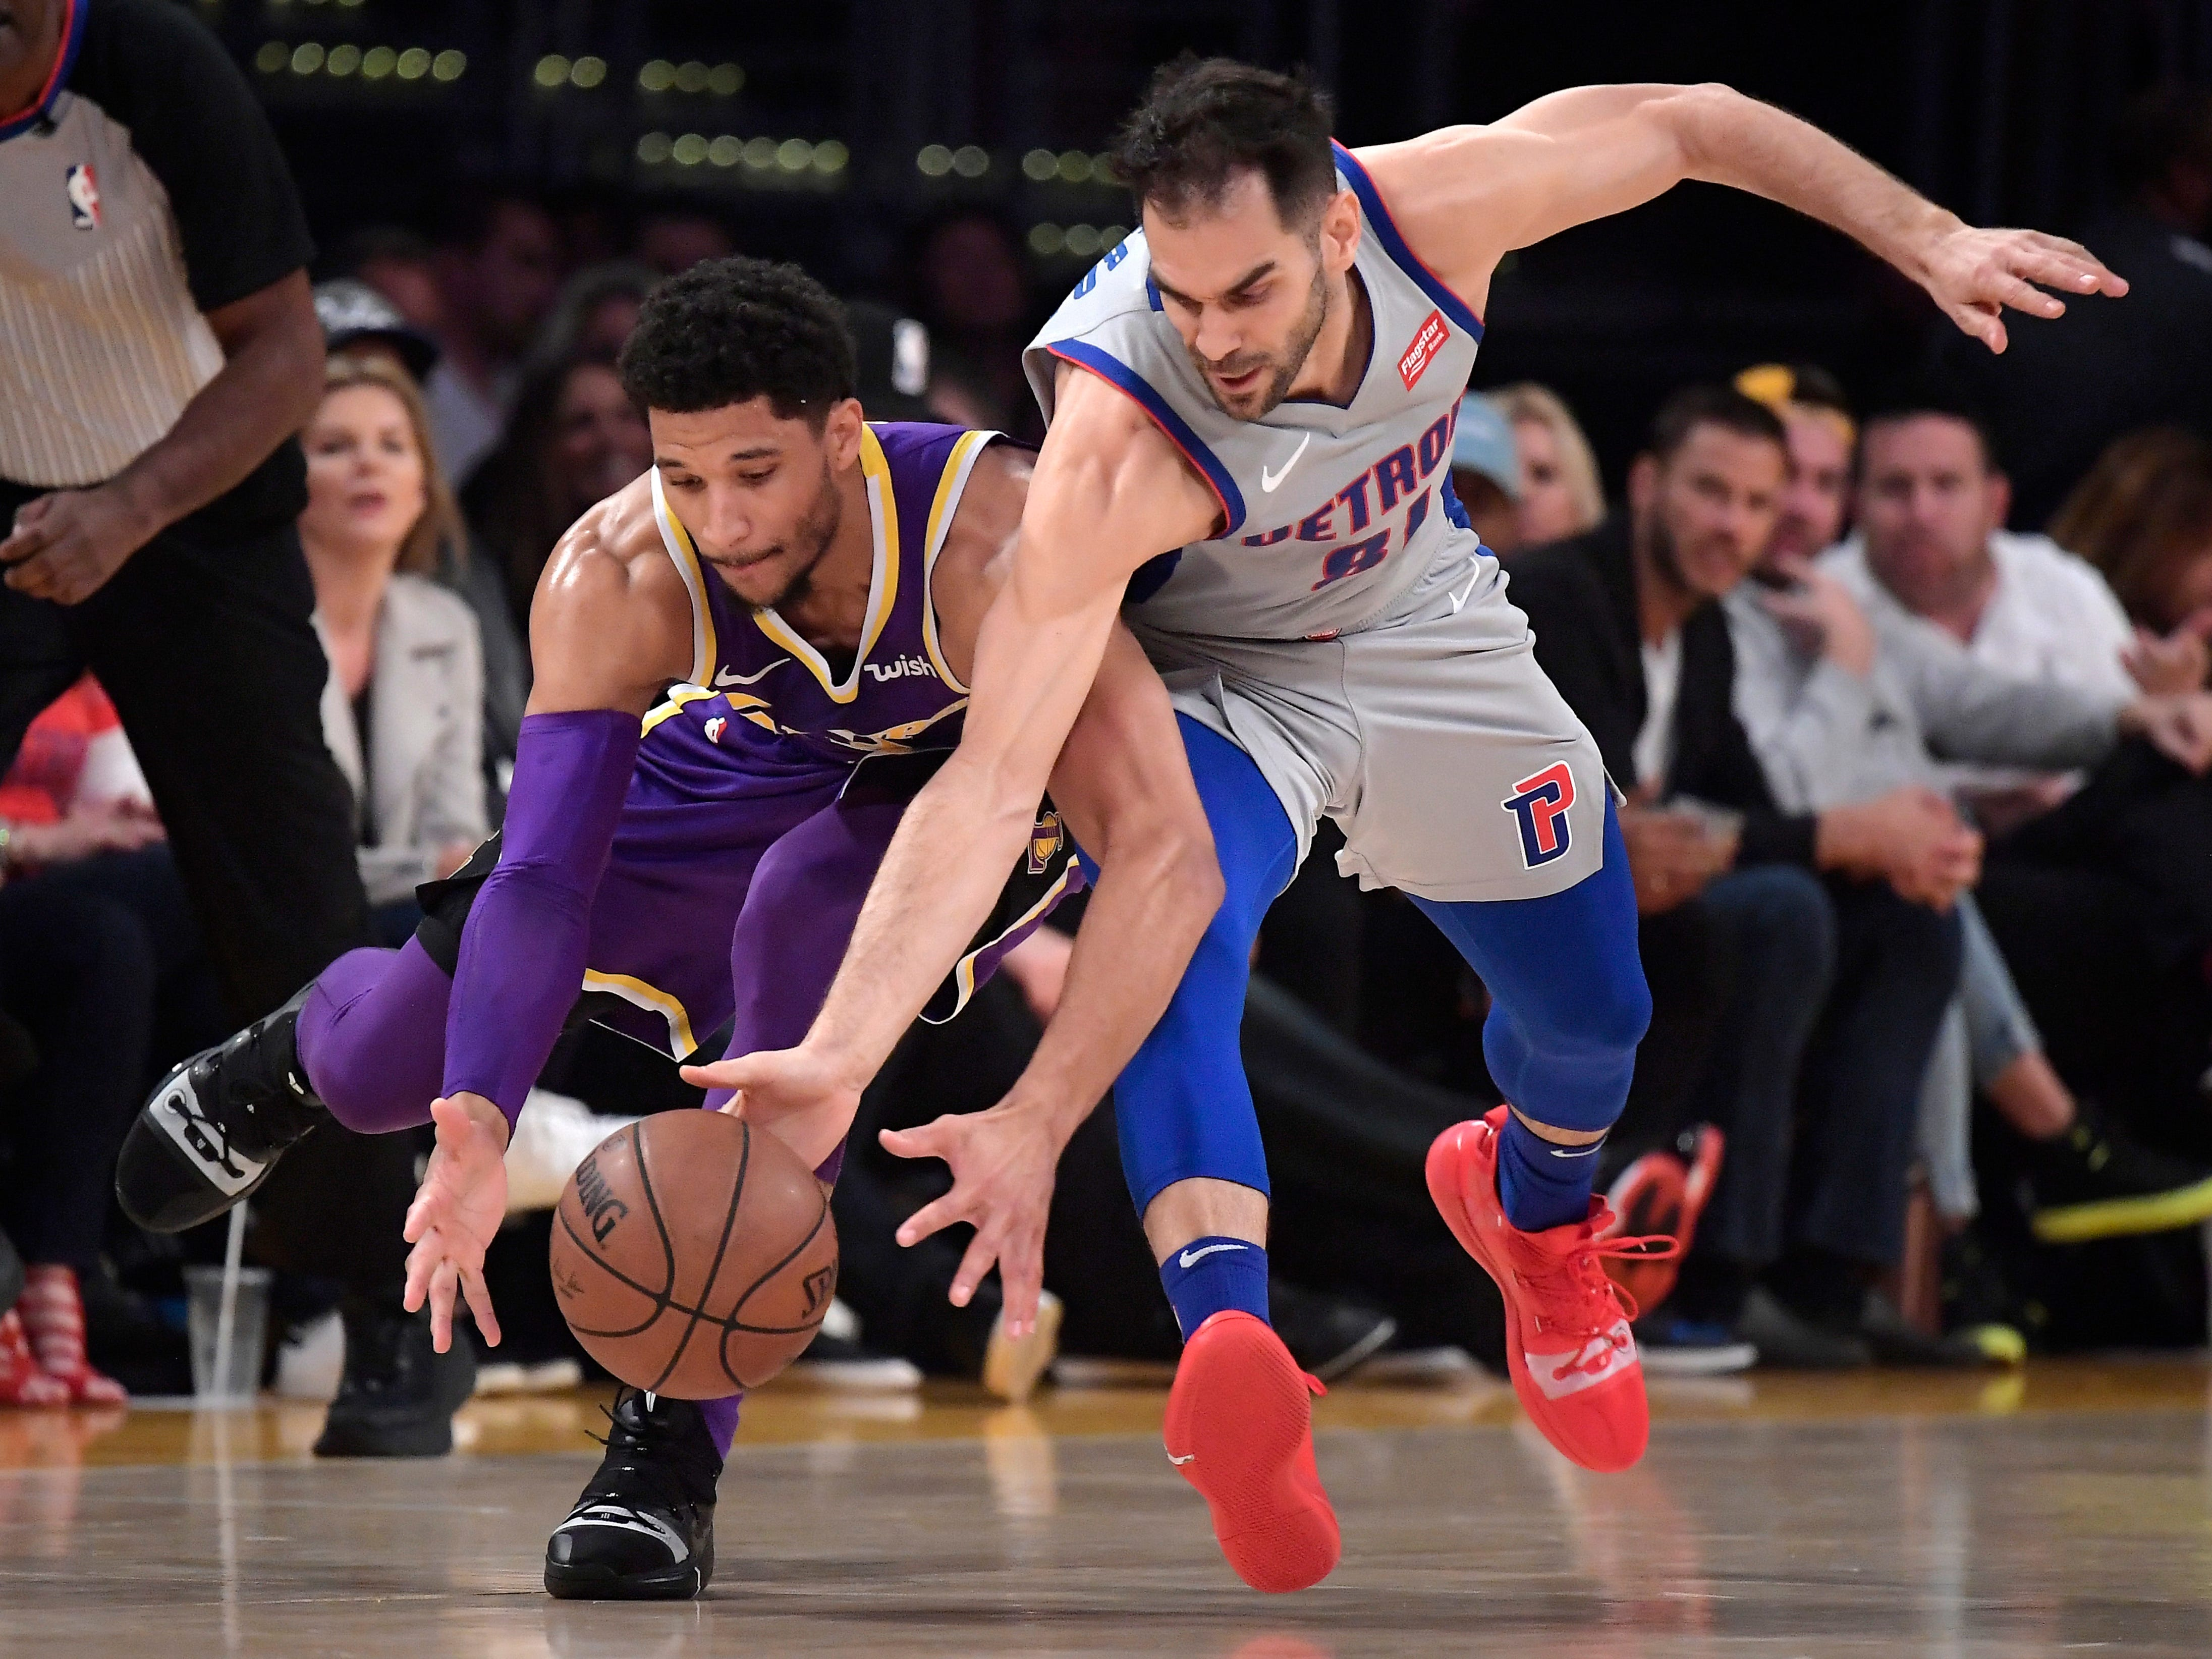 Los Angeles Lakers guard Josh Hart, left, and Detroit Pistons guard Jose Calderon go after a loose ball during the first half of an NBA basketball game Wednesday, Jan. 9, 2019, in Los Angeles.